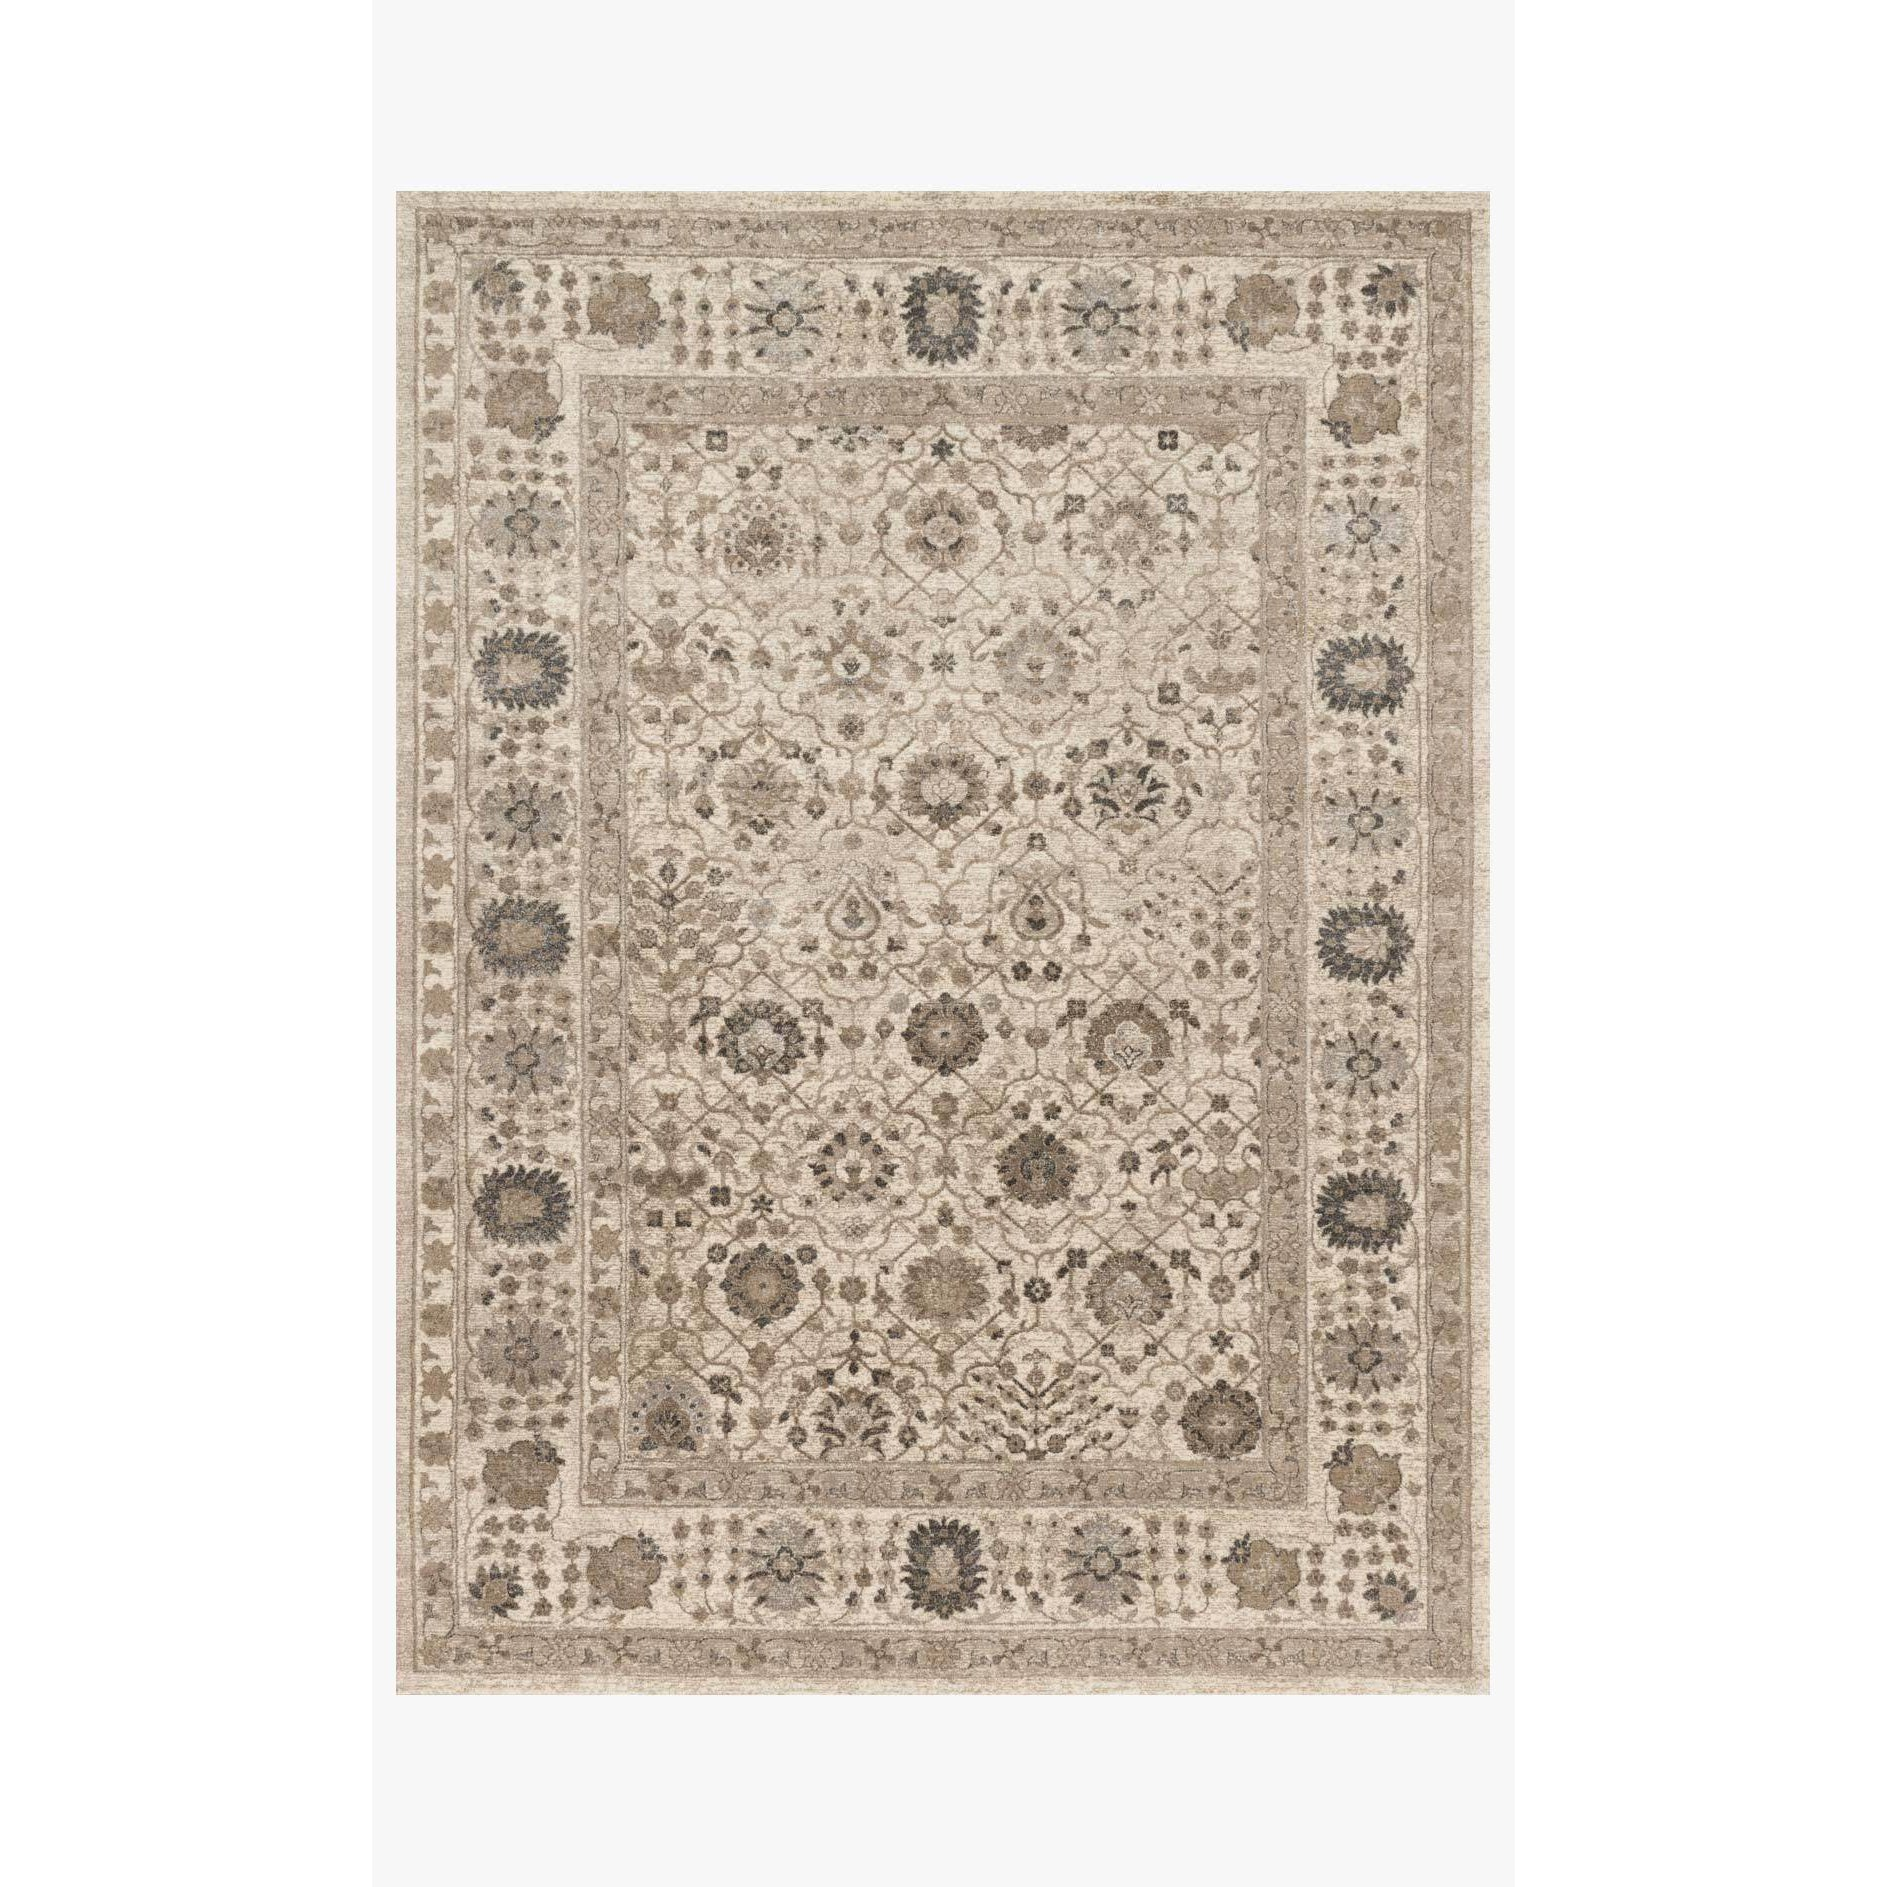 Century Rug by Loloi Rugs - CQ-02 - Sand / Sand